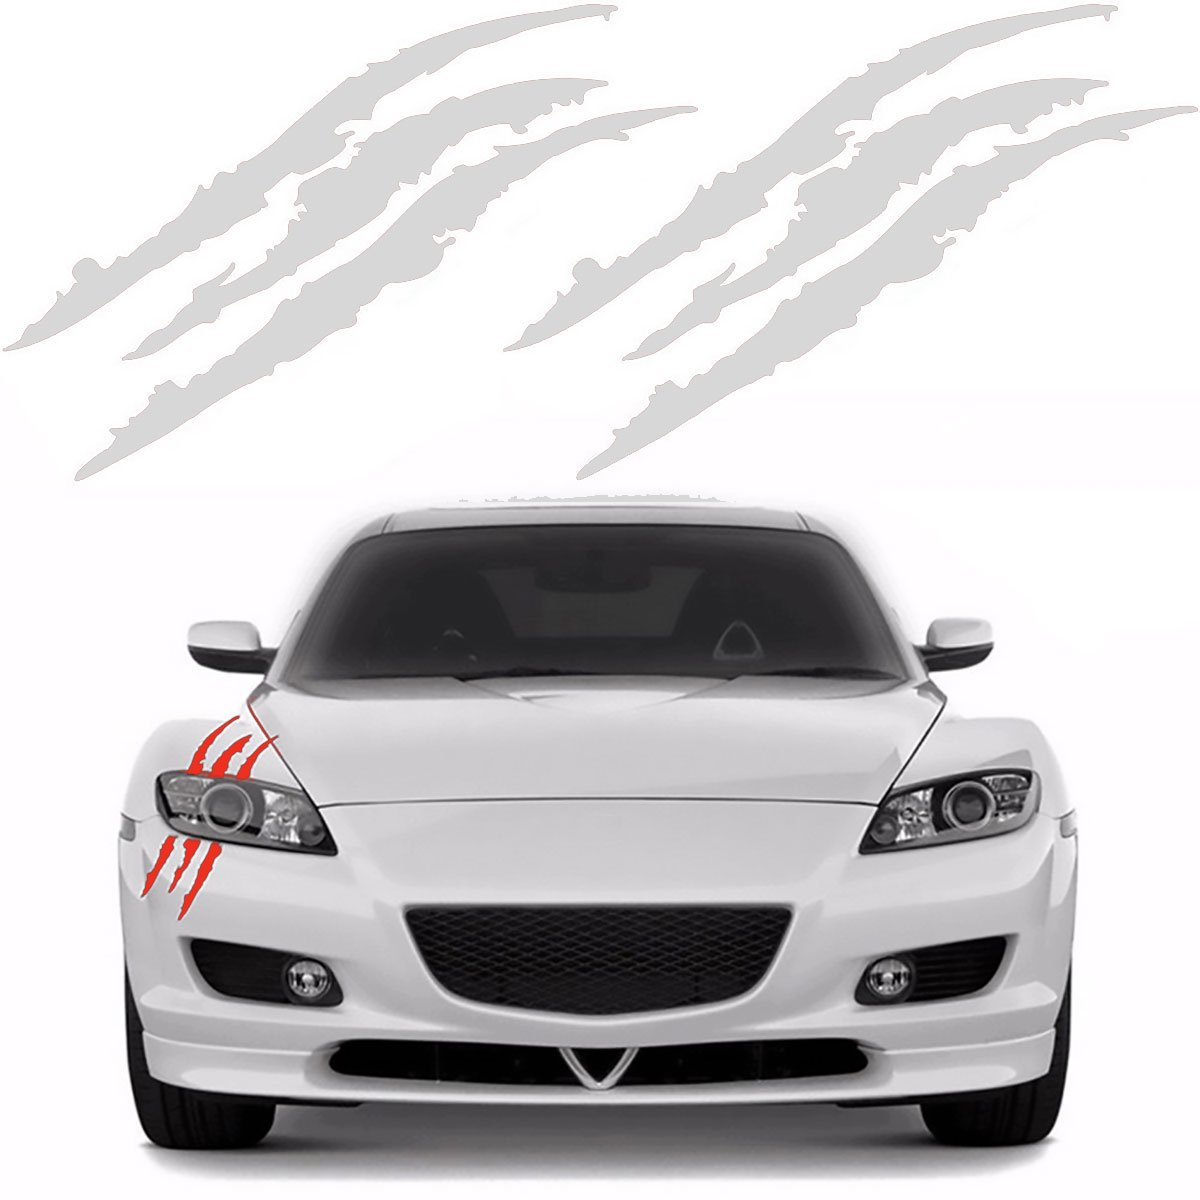 Amazon com 2 pcs claw marks decal reflective car scratch sticker for auto vehicle headlamp truck headlight decoration white one size